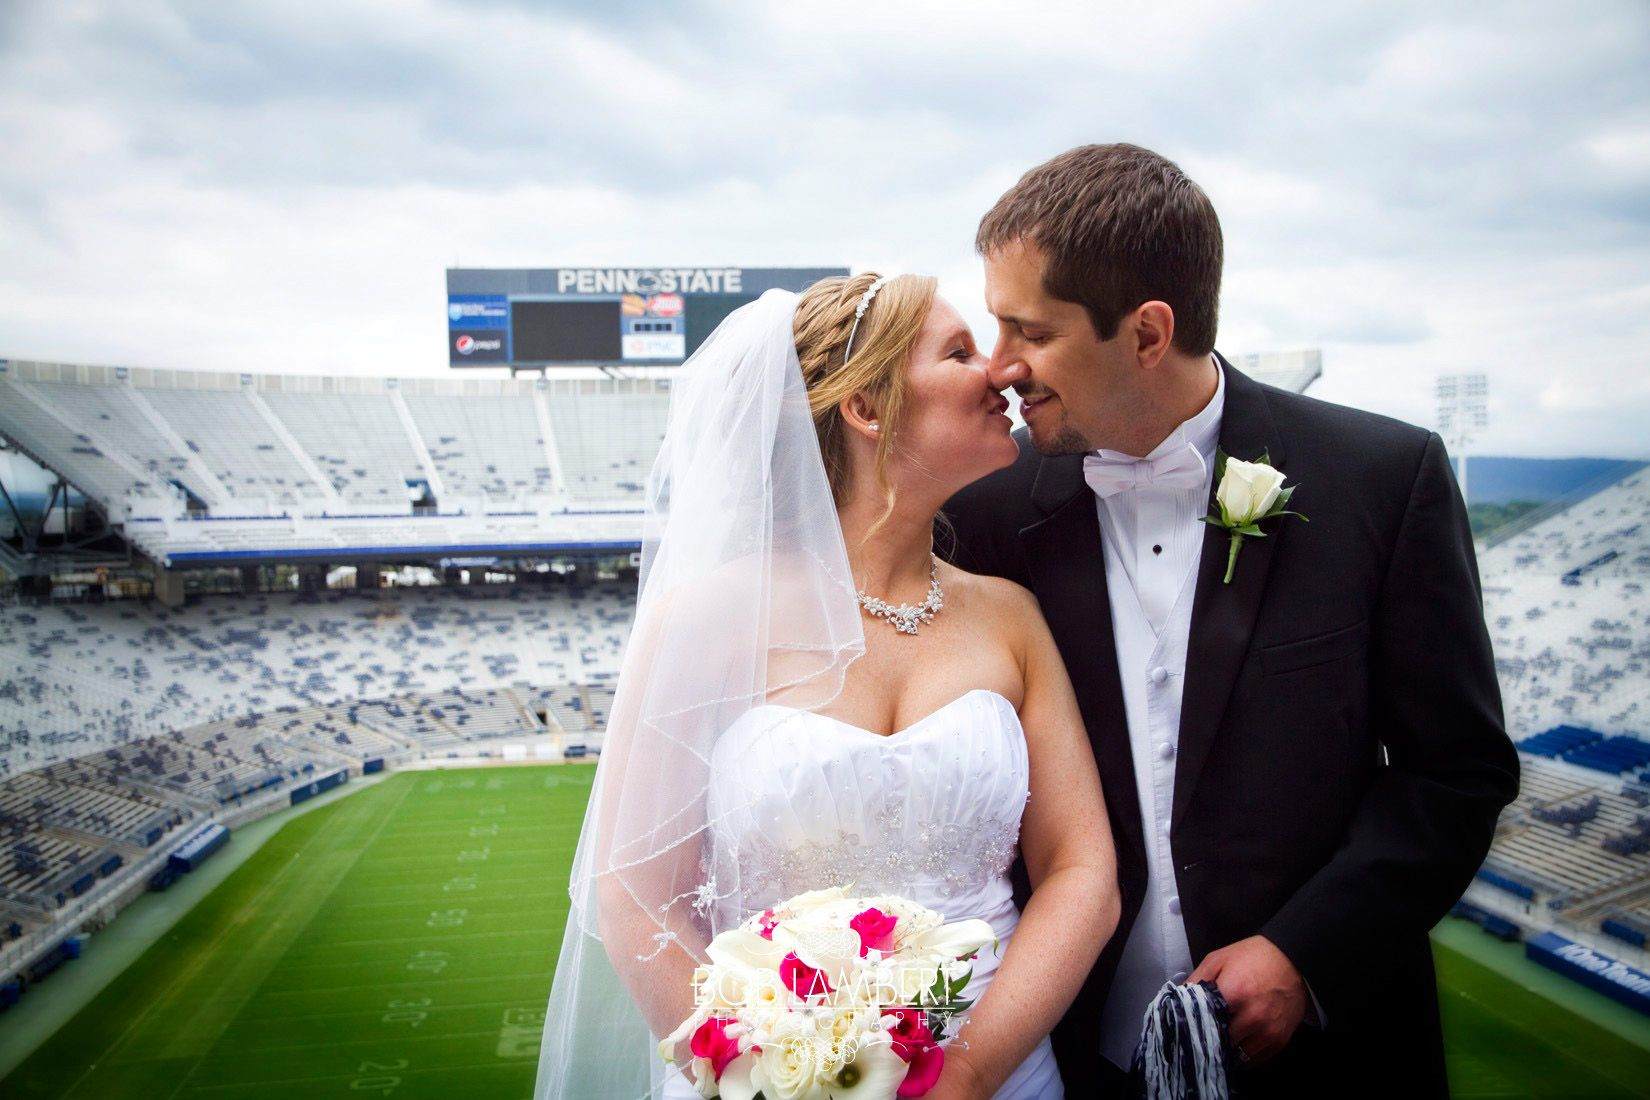 Penn State Wedding Photos Google Search